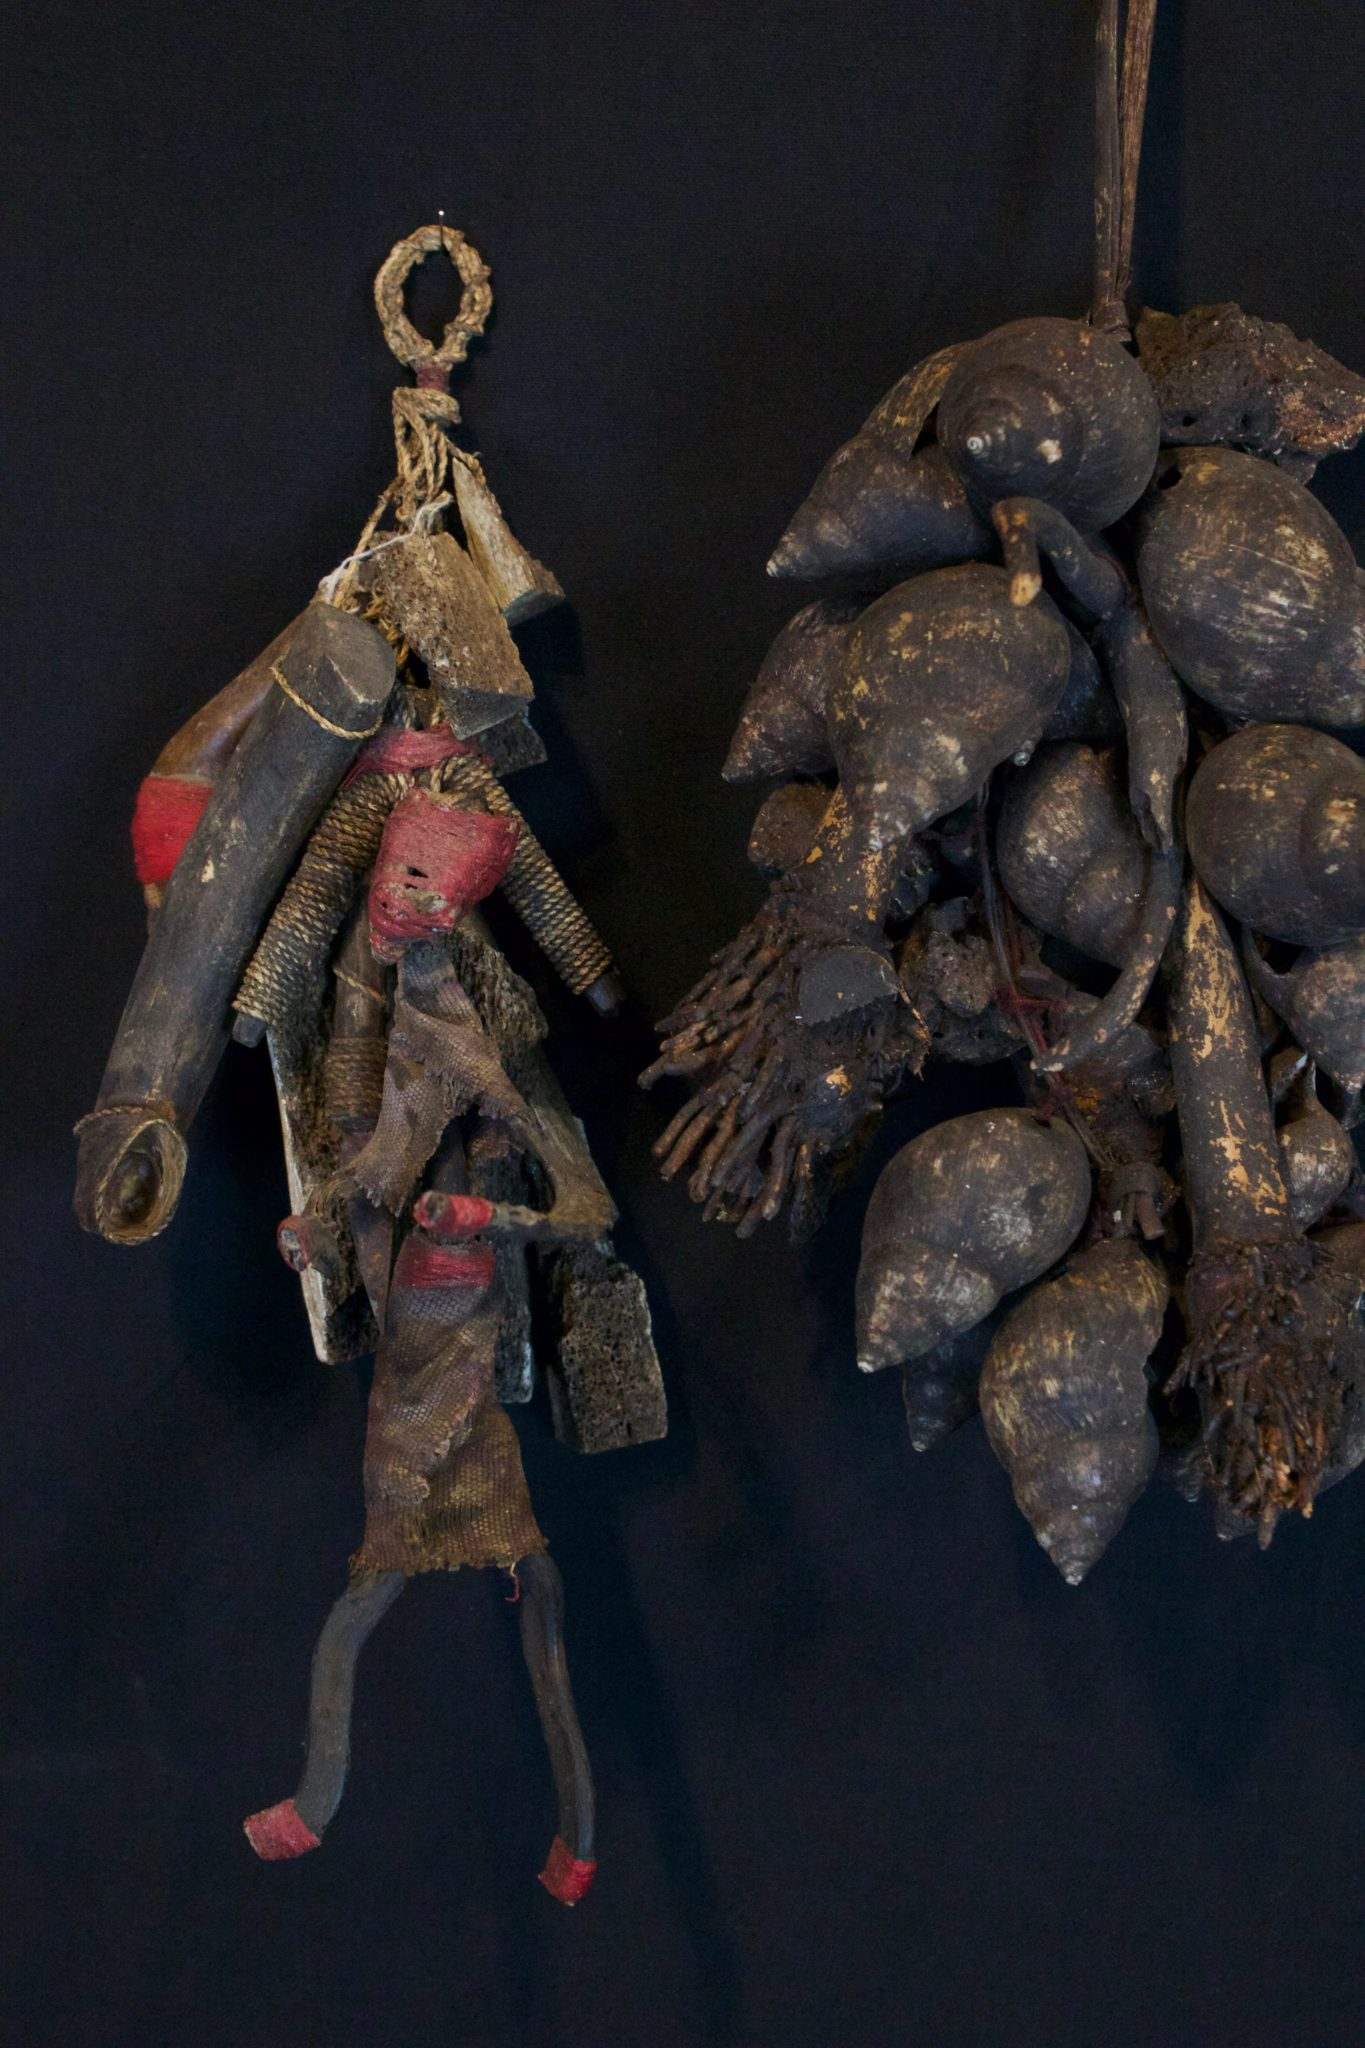 "Shaman Healing Fetish Rattles, Lombok, Lesser Sunda Islands, Indonesia, Early to mid 20th c, Wood pigmented with soot, metal blade, cloth fiber, patinated with age and use. Used for healing rituals - Shaken to fend off harmful spirits. Dimensions: (left - 12"" x 5 ½"" x 4"", sold); (right - 14"" x 7"" x 6"", Sold)"